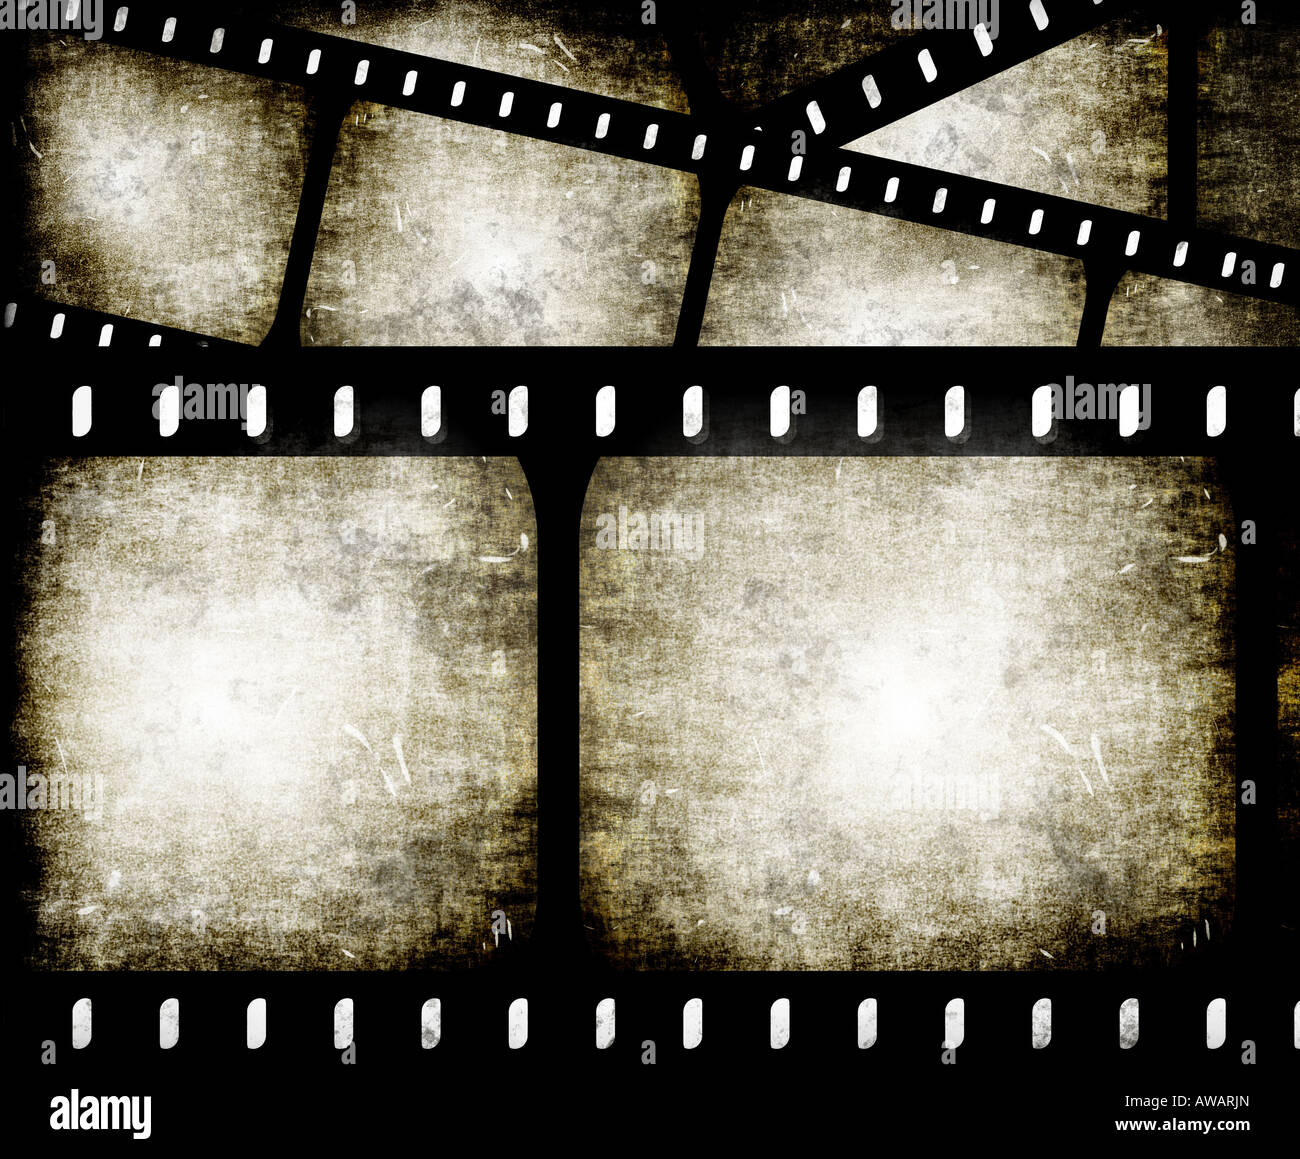 abstract composition of movie frames or film strip - Stock Image